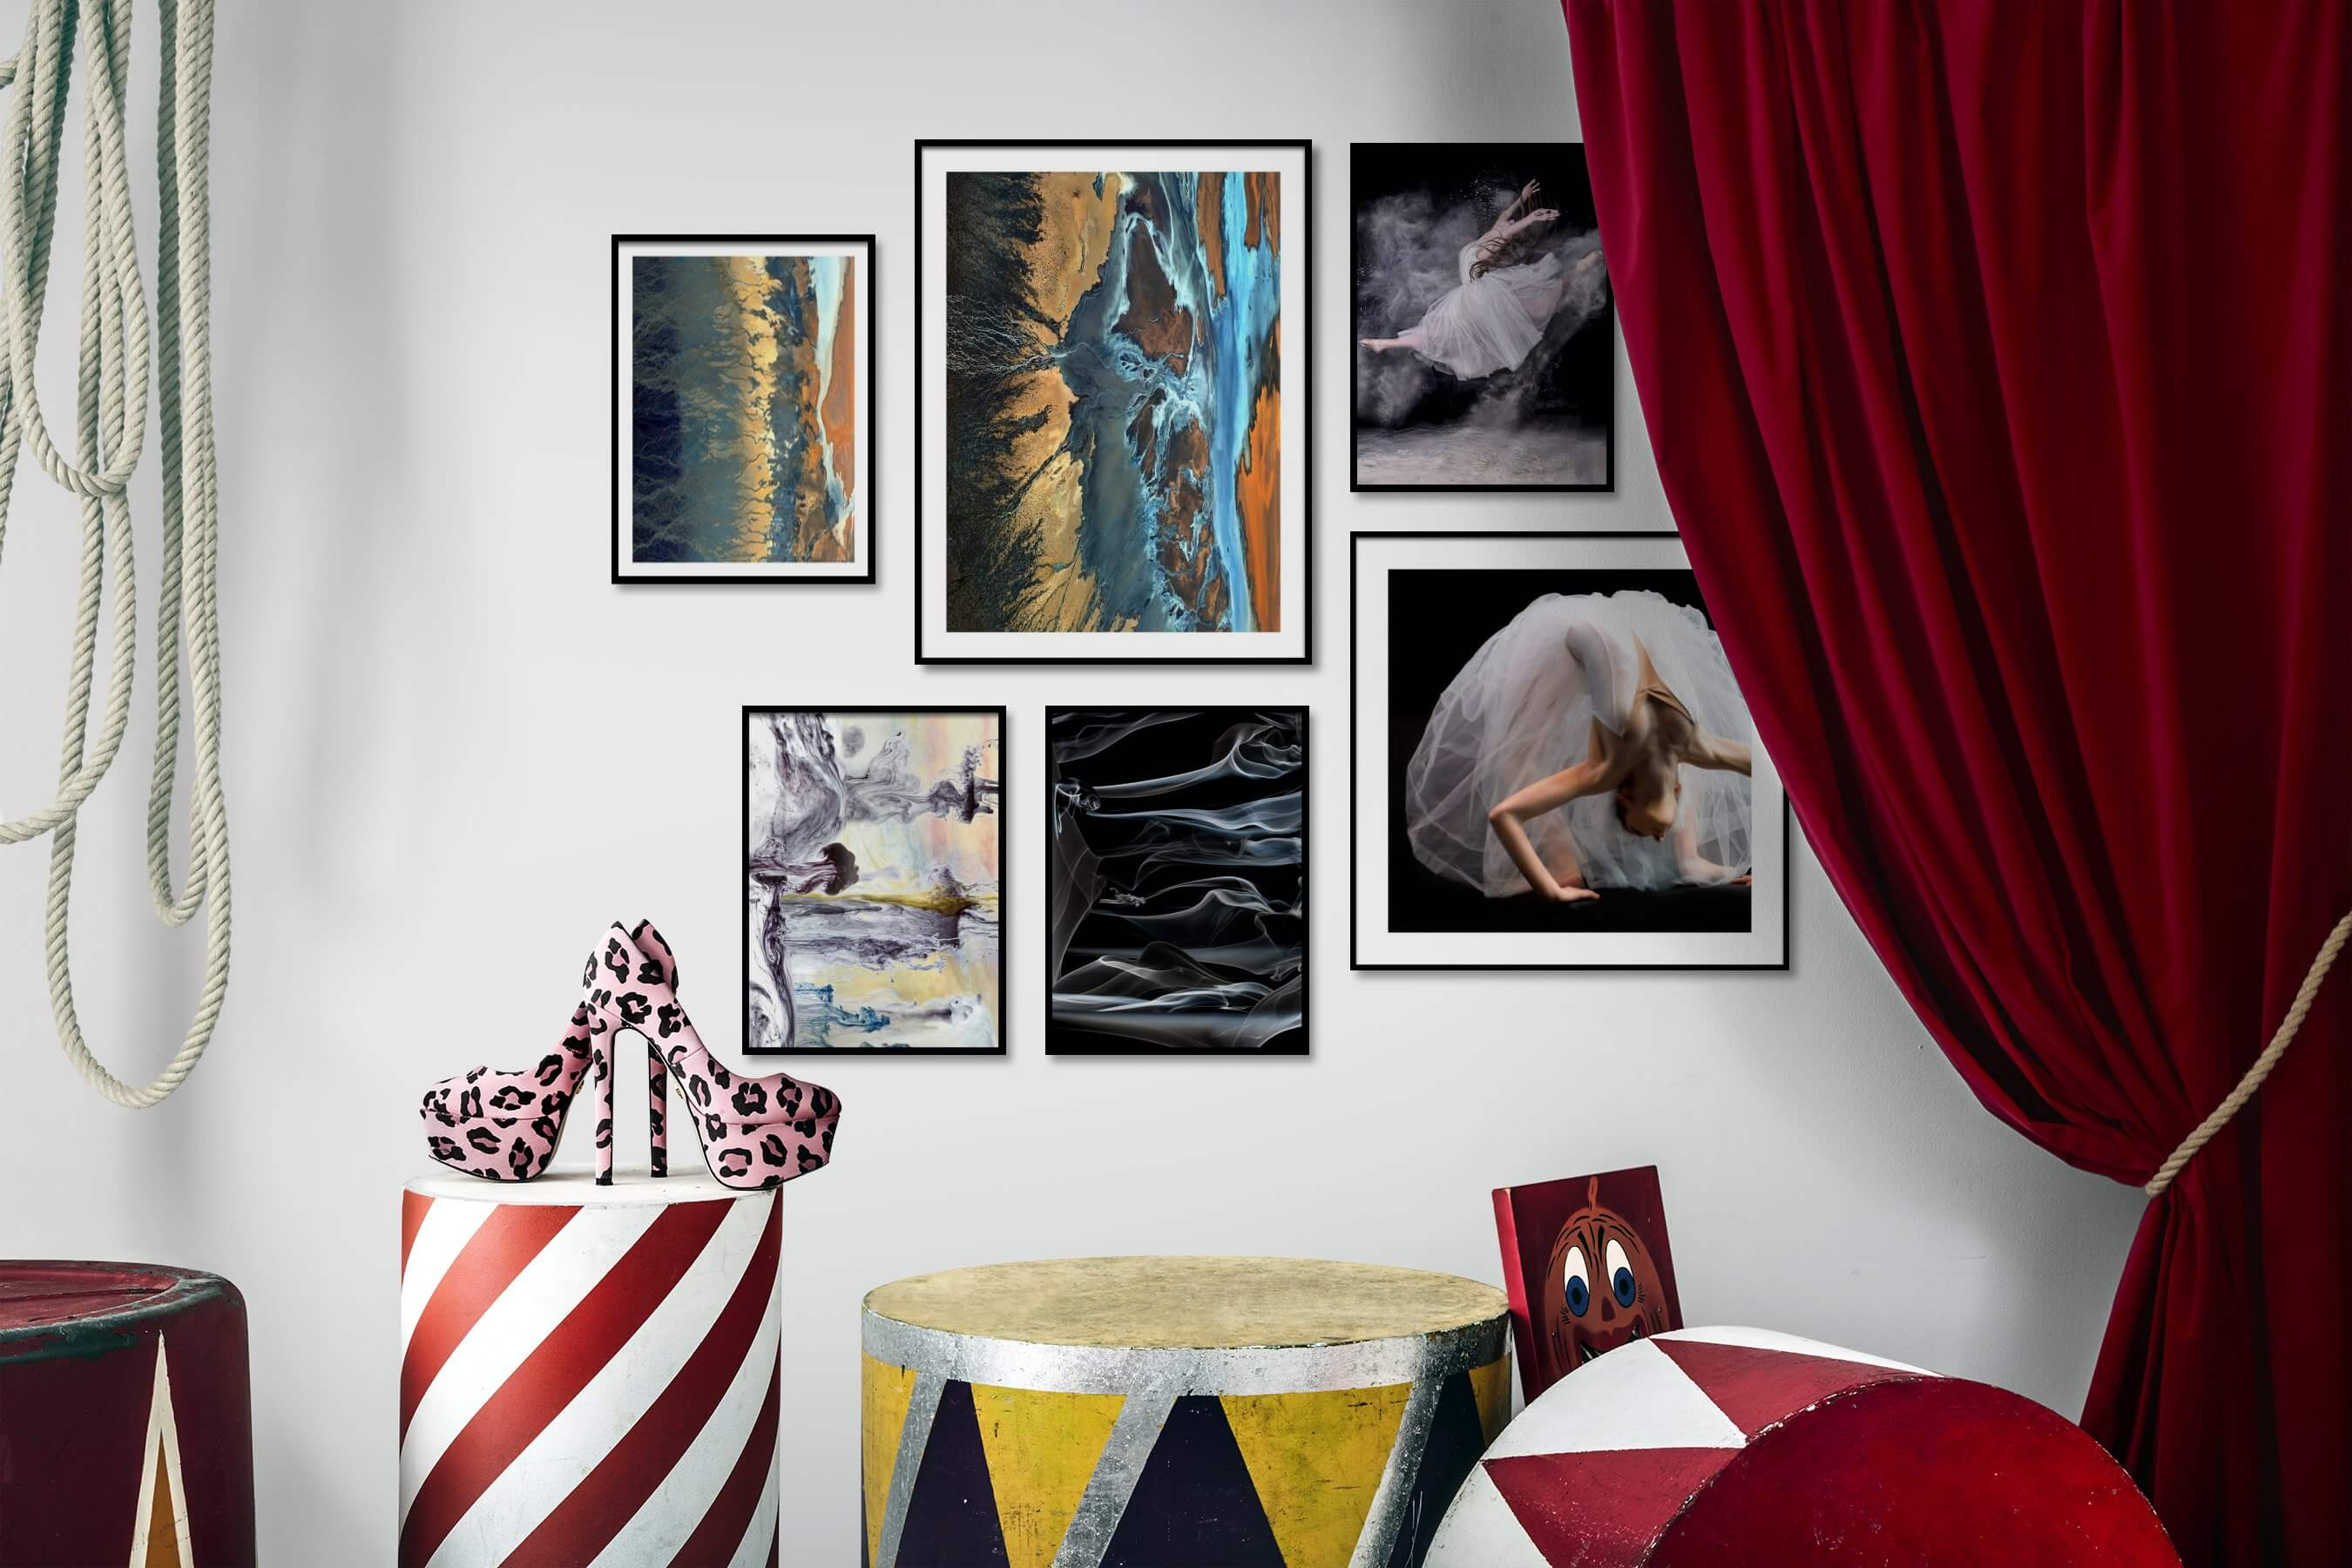 Gallery wall idea with six framed pictures arranged on a wall depicting For the Moderate, Nature, For the Maximalist, and Fashion & Beauty